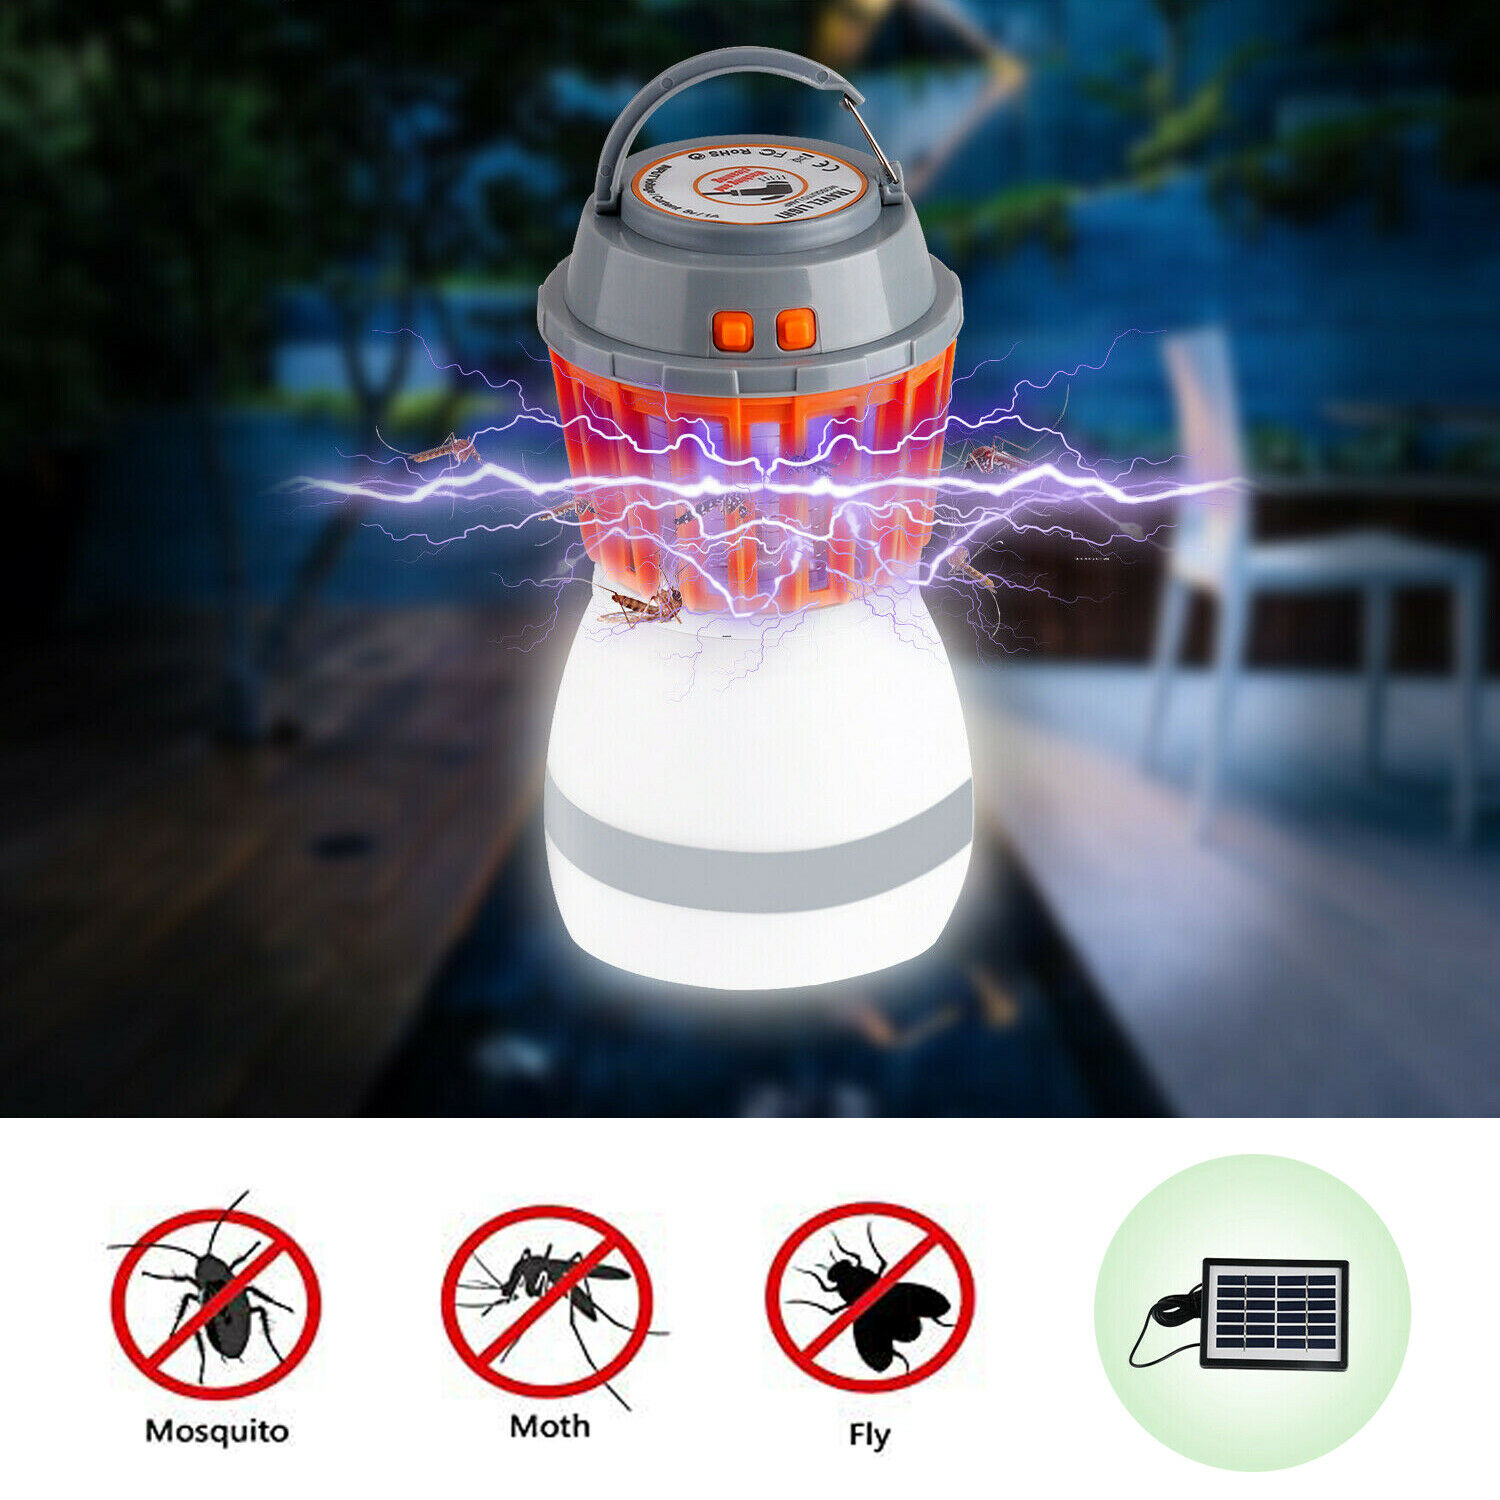 Solar Mosquito Killer Lamp Light Electric Kill Fly Insect Zapper Outdoor Camping Home & Garden